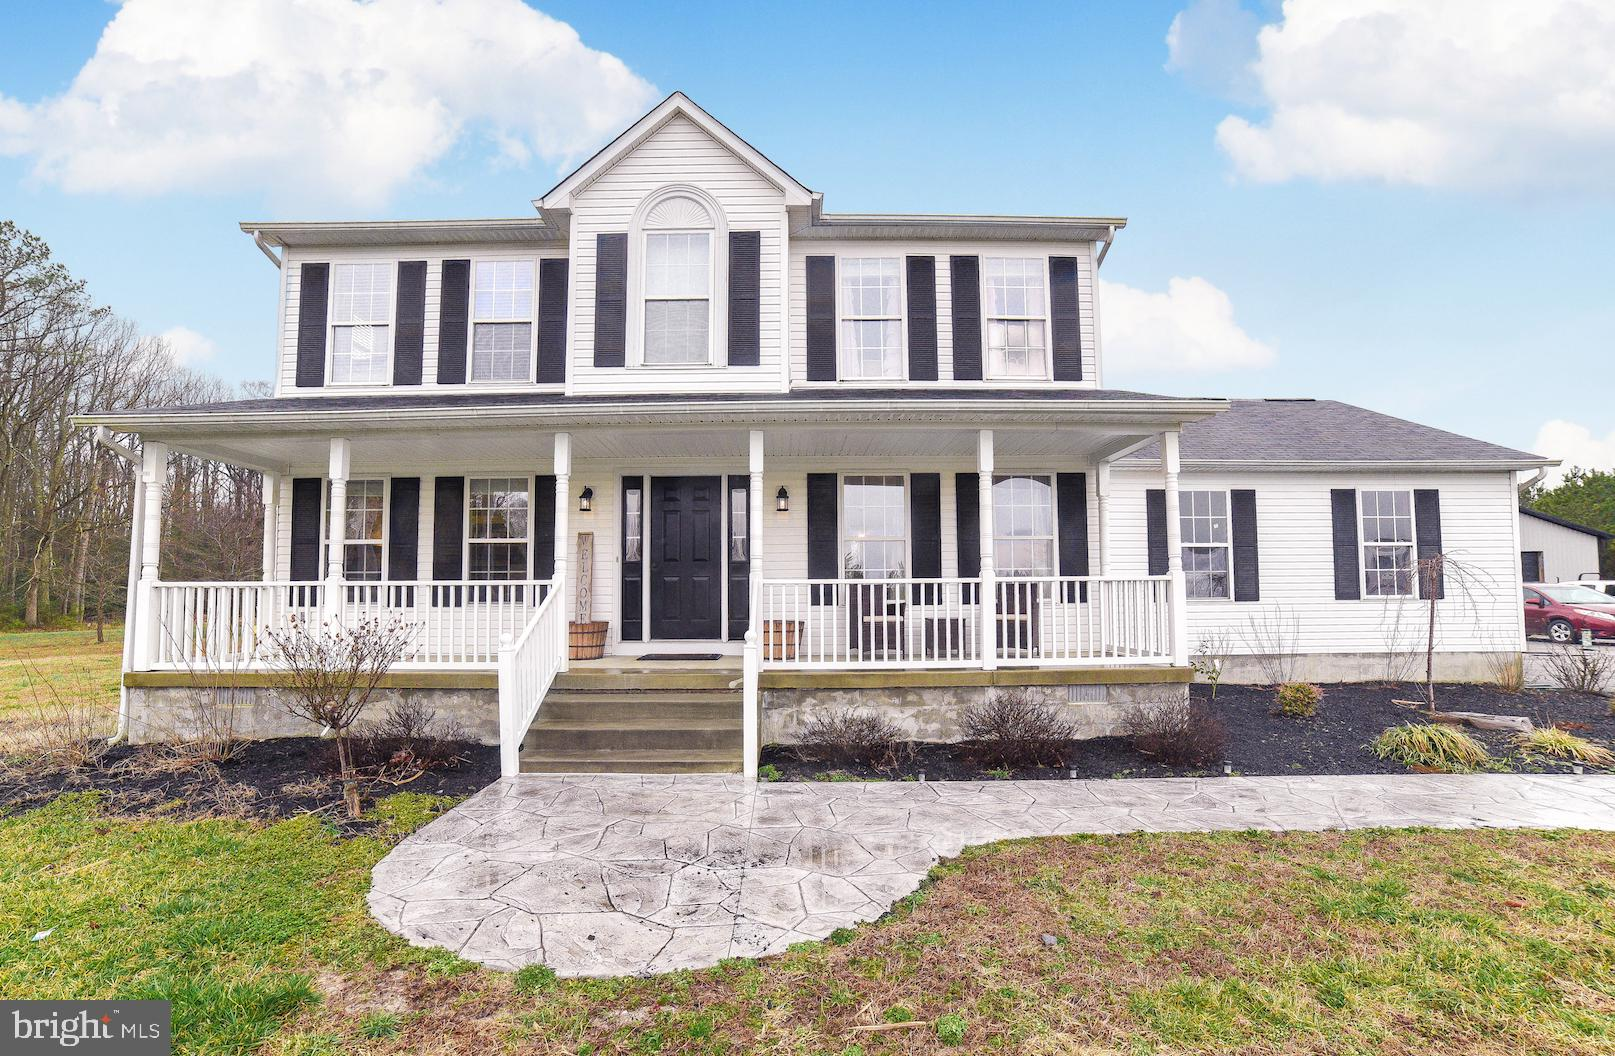 23057 GRAMPTON ROAD, CLEMENTS, MD 20624